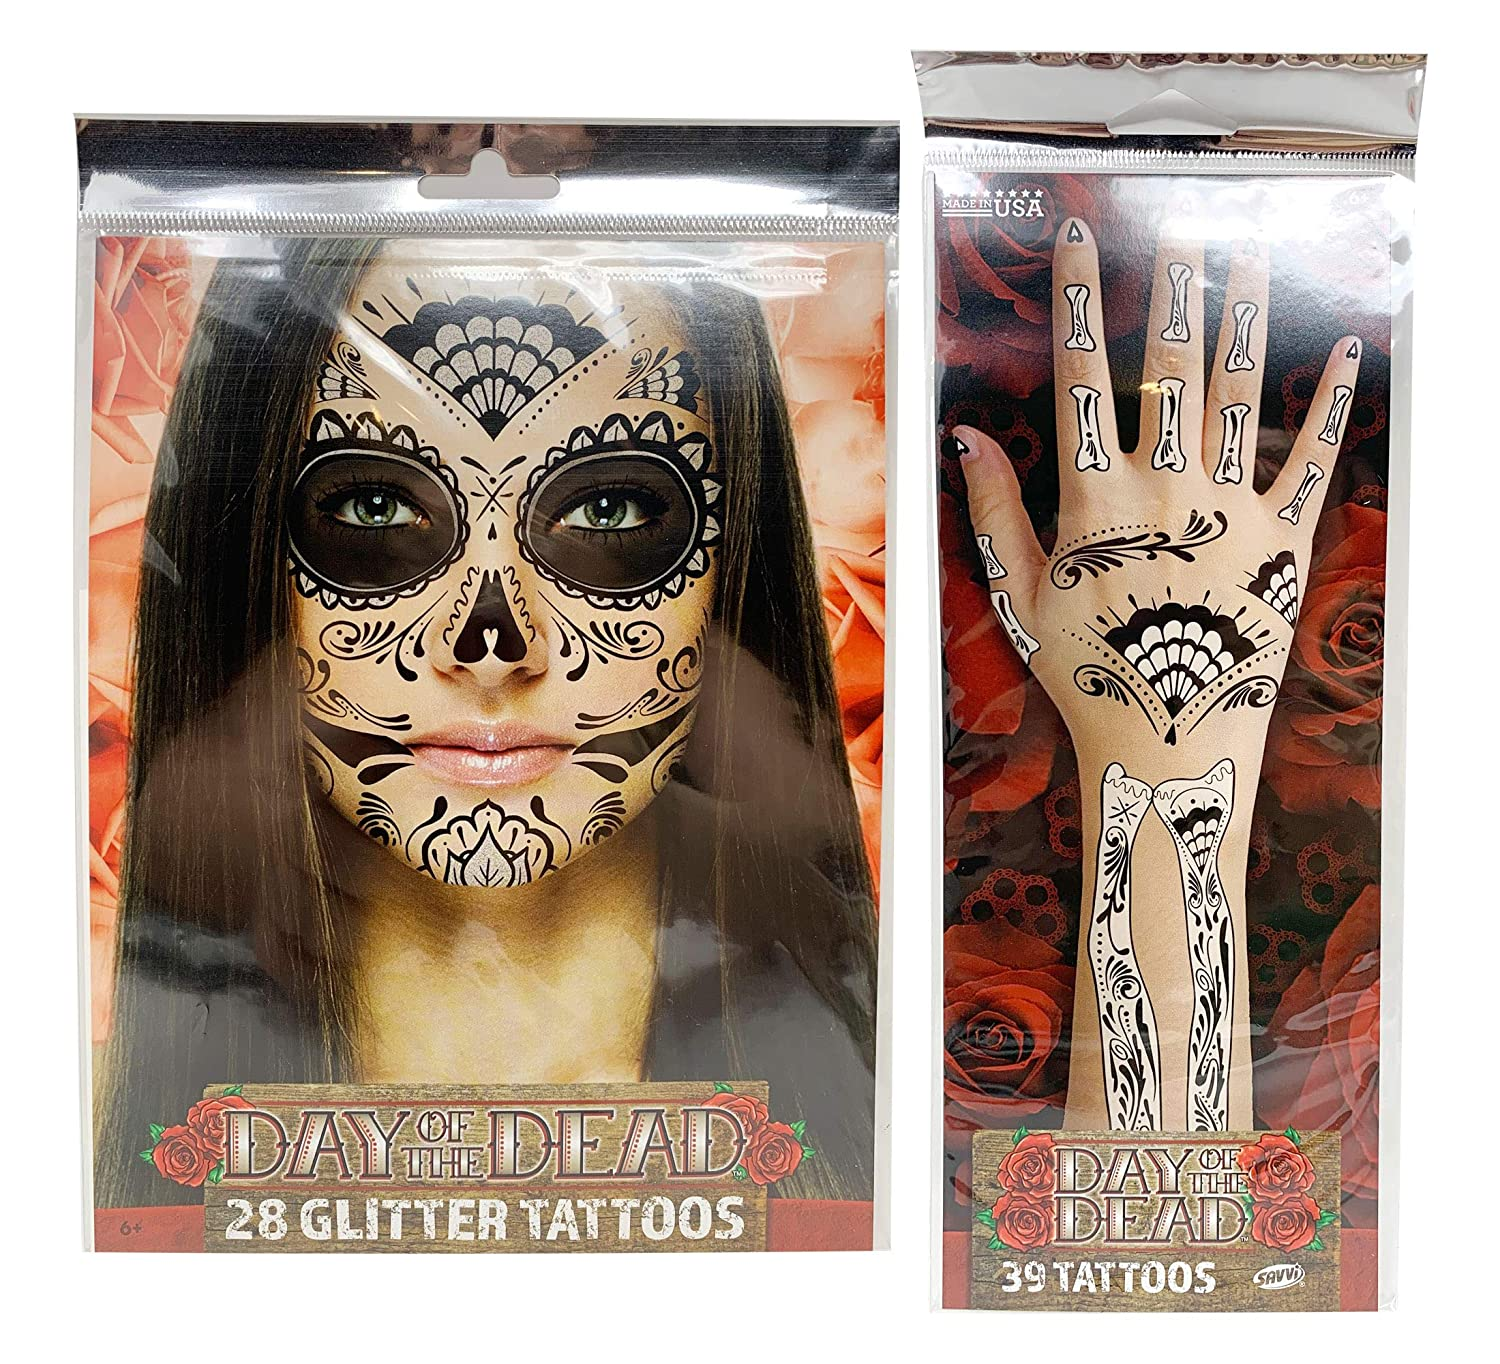 Day of The Dead Face Tattoos, Day of the Dead Costumes for Women, Day of the Dead Mask, Day of the Dead Decorations, Day of the Dead Costume, Temporary Face Tattoos (BlackWhite Glitter)